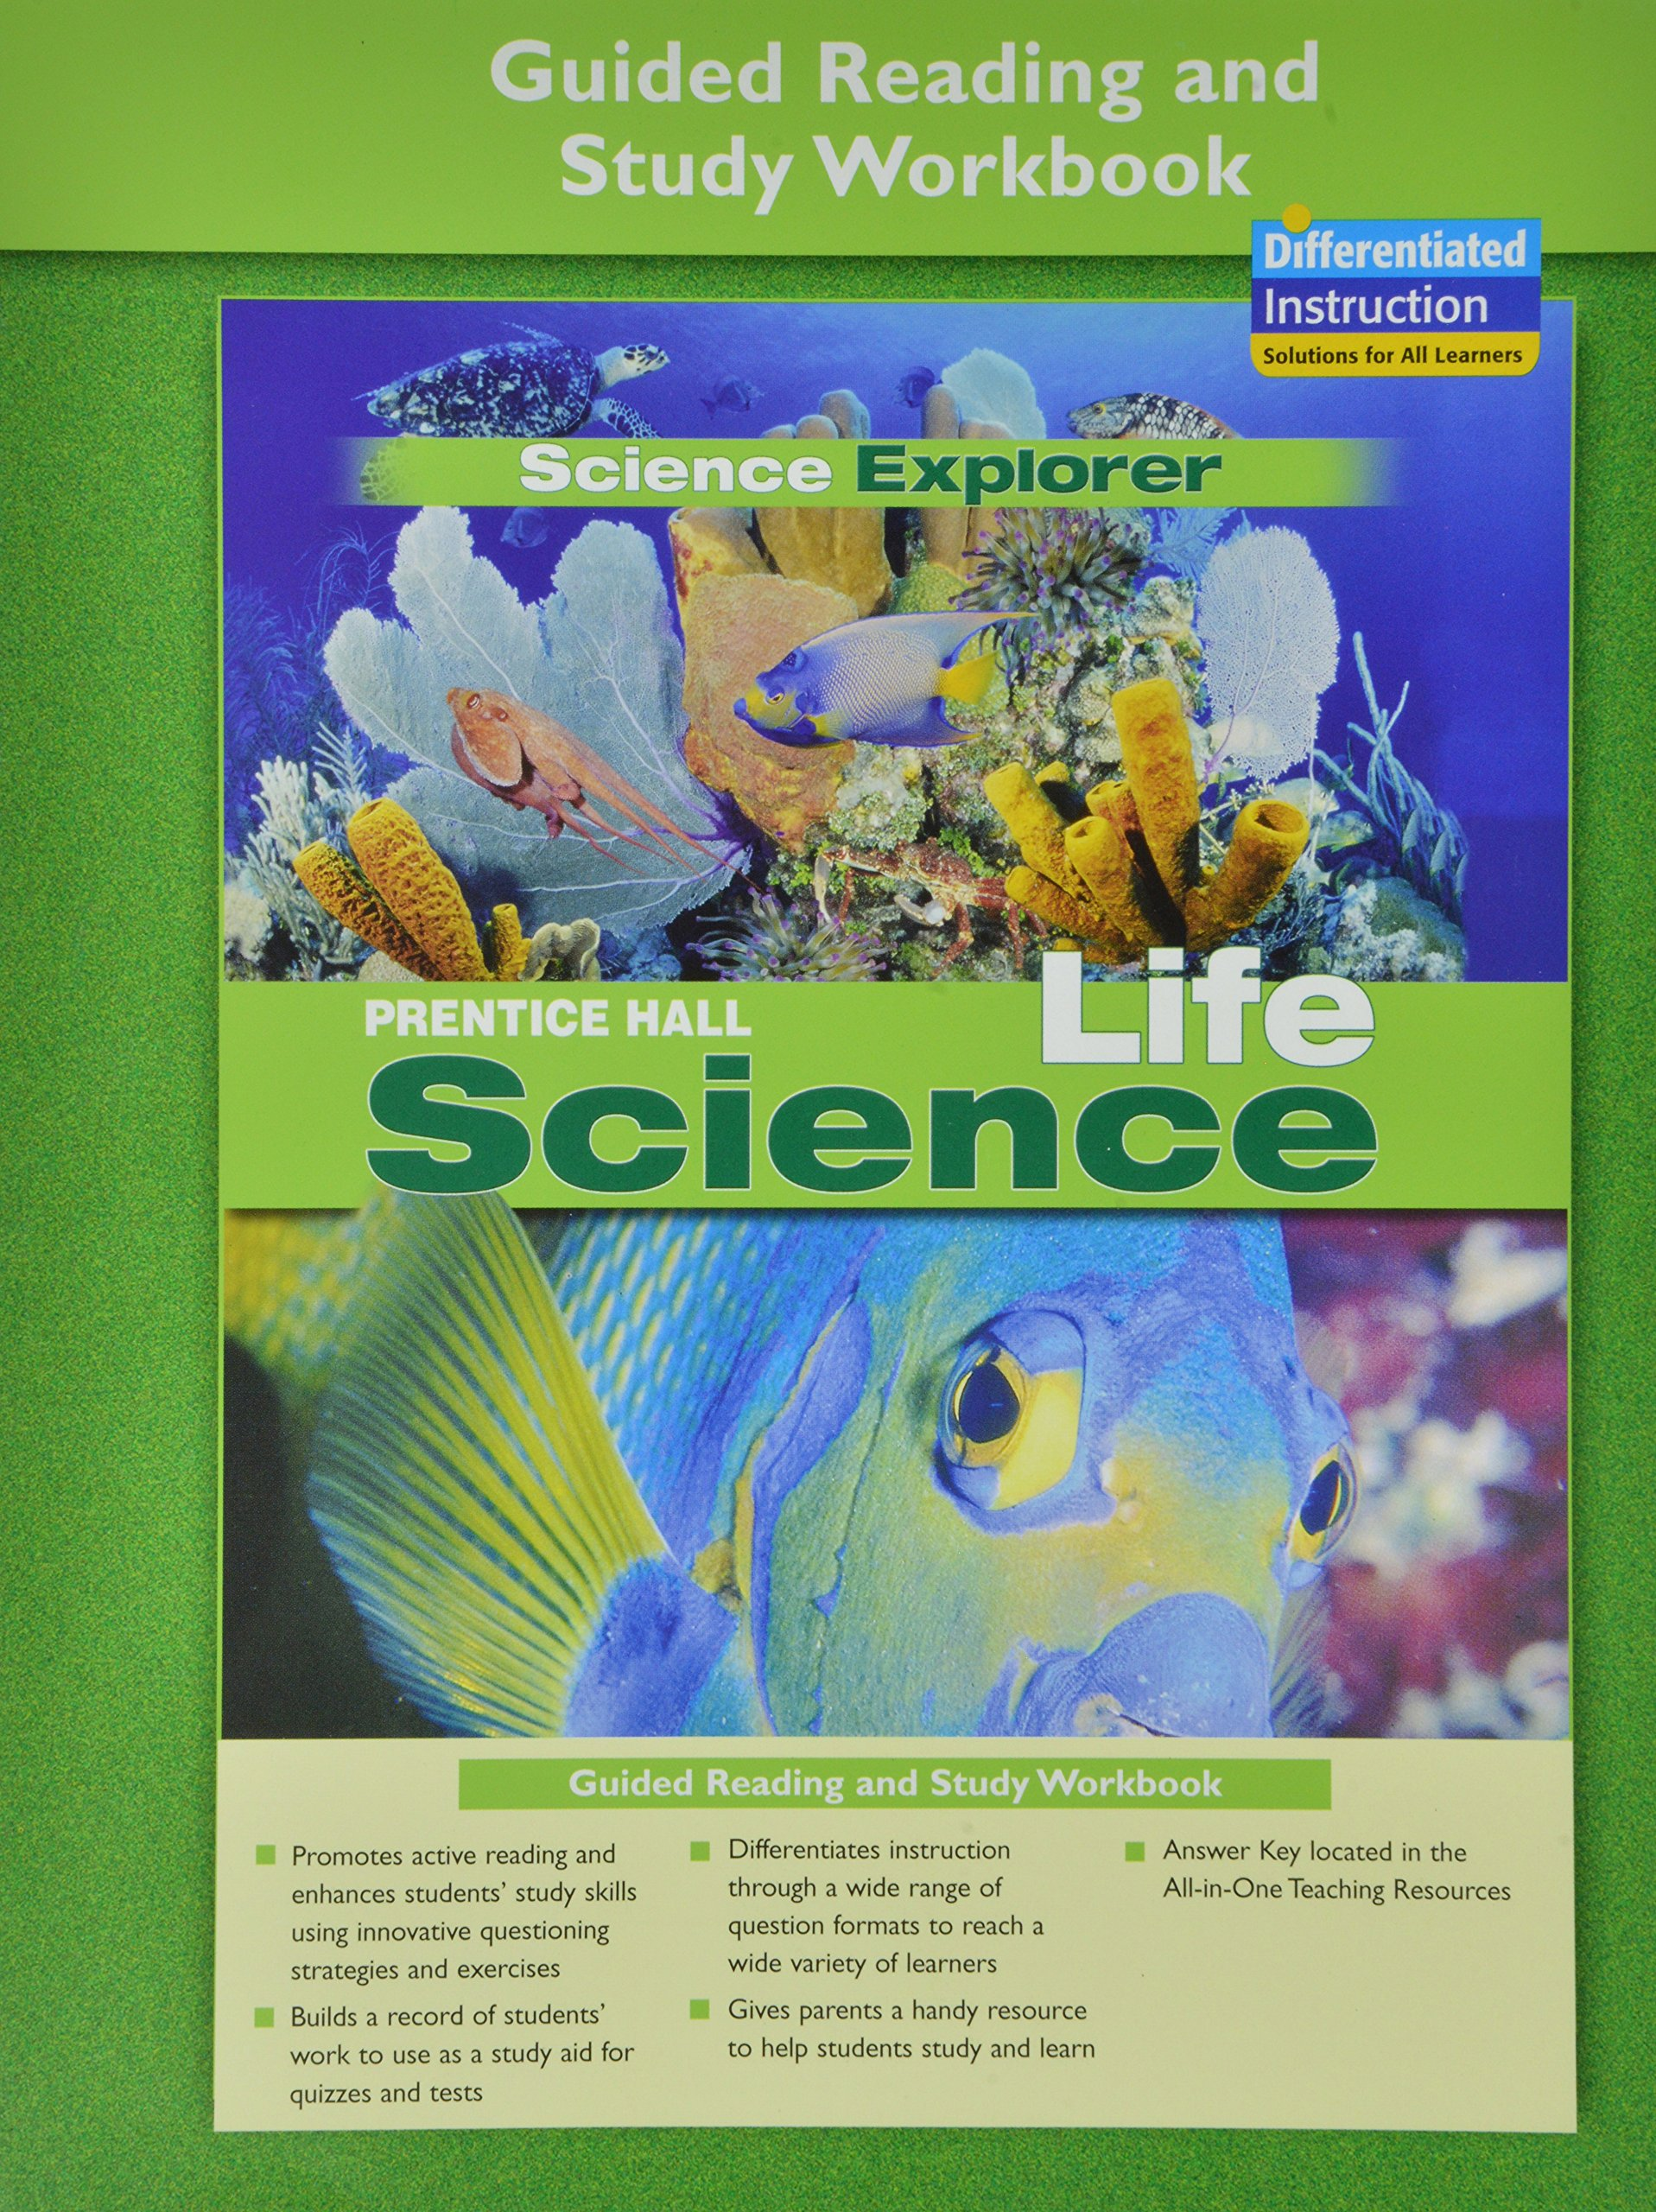 Prentice Hall Science Explorer Life Science Guided Reading and Study  Workbook 2005: Michael J. Padilla, Ioannis Miaoulis, Martha Cyr:  9780131901971: Books ...